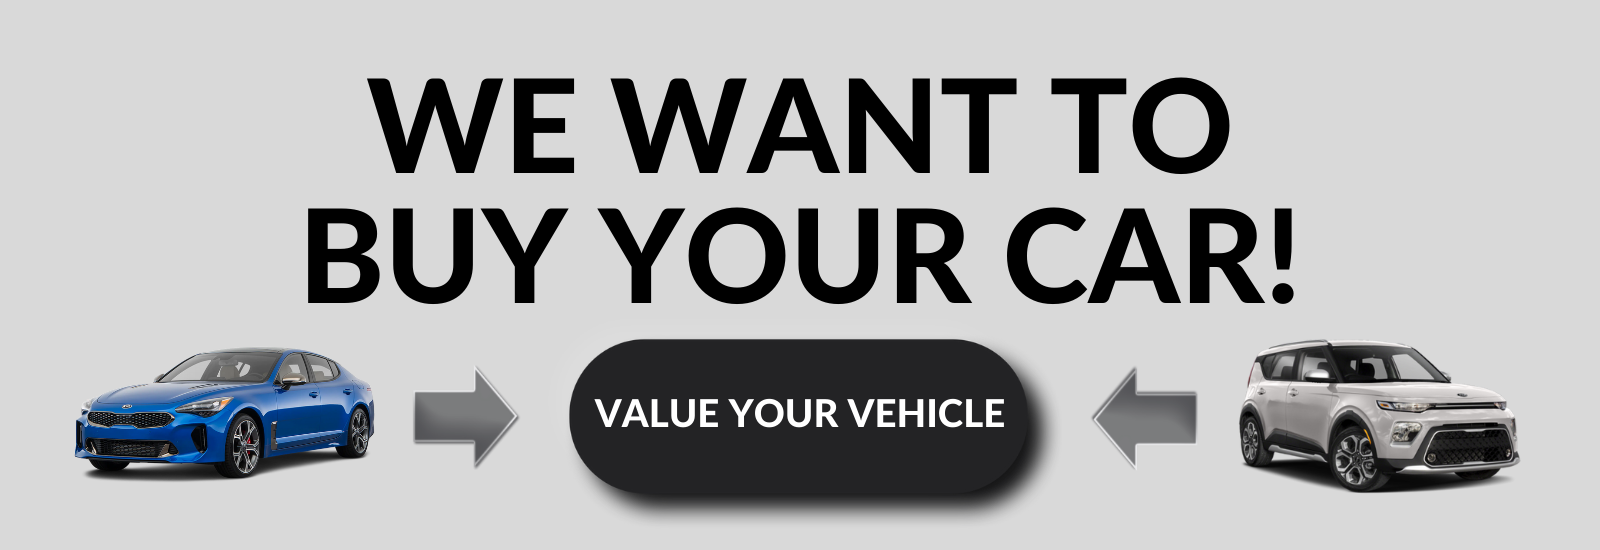 WE WANT TO BUY YOUR CAR! Kia West